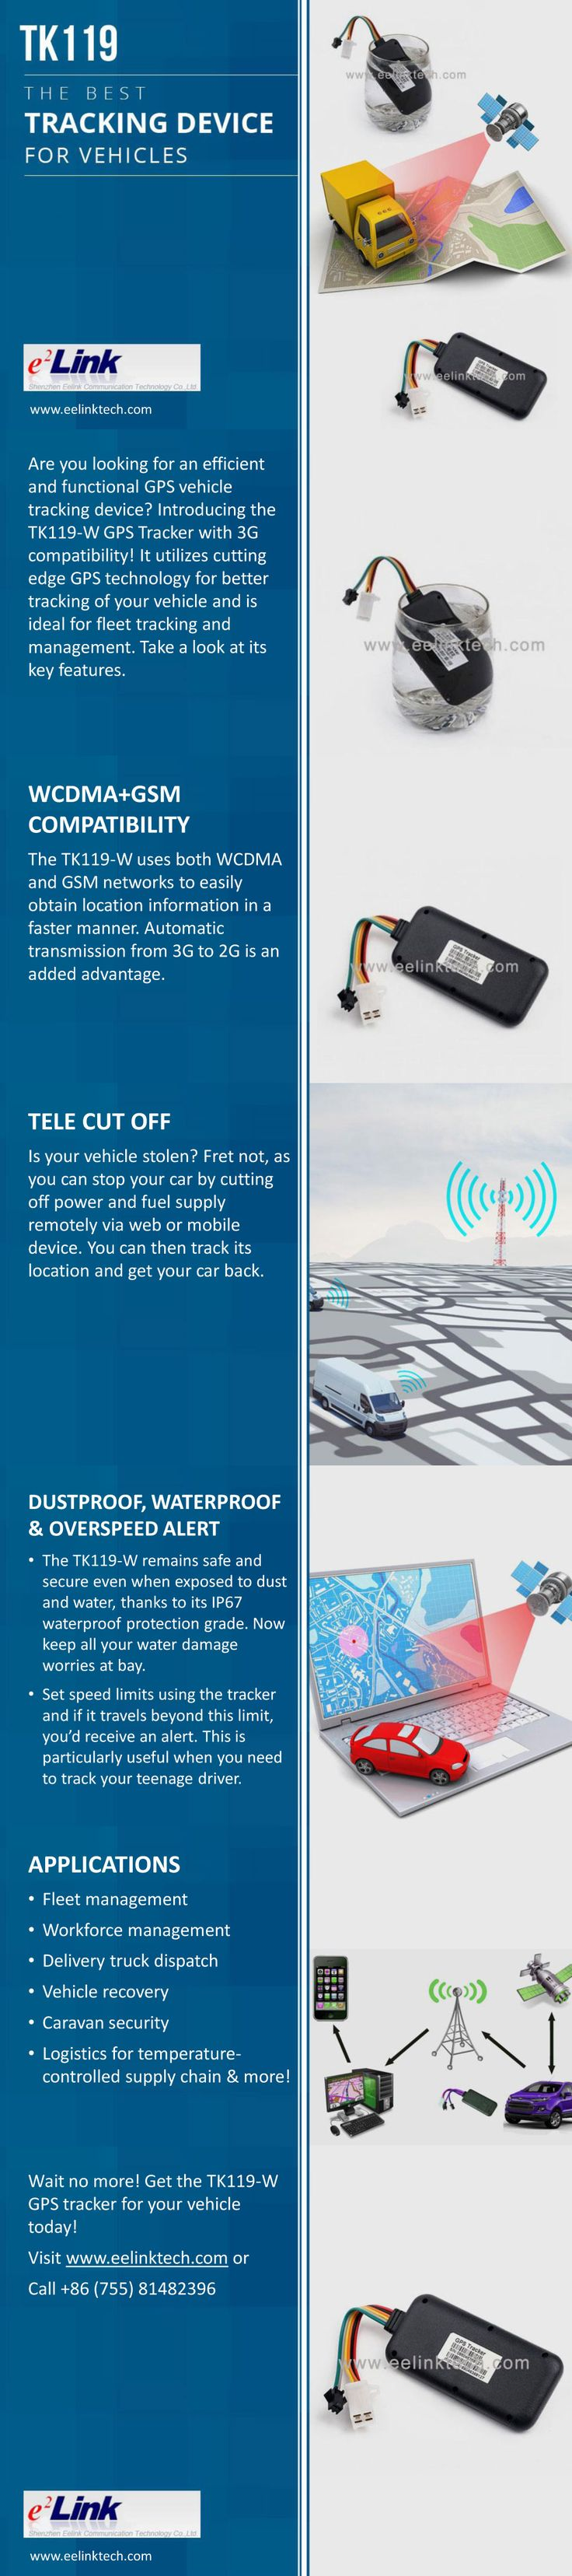 TK119-W - The Best Vehicle Tracking Device  -  The TK119-W GPS vehicle tracking device is your best choice for fleet management, easy vehicle tracking and more. For details, check out this presentation and visit http://www.eelinktech.com/